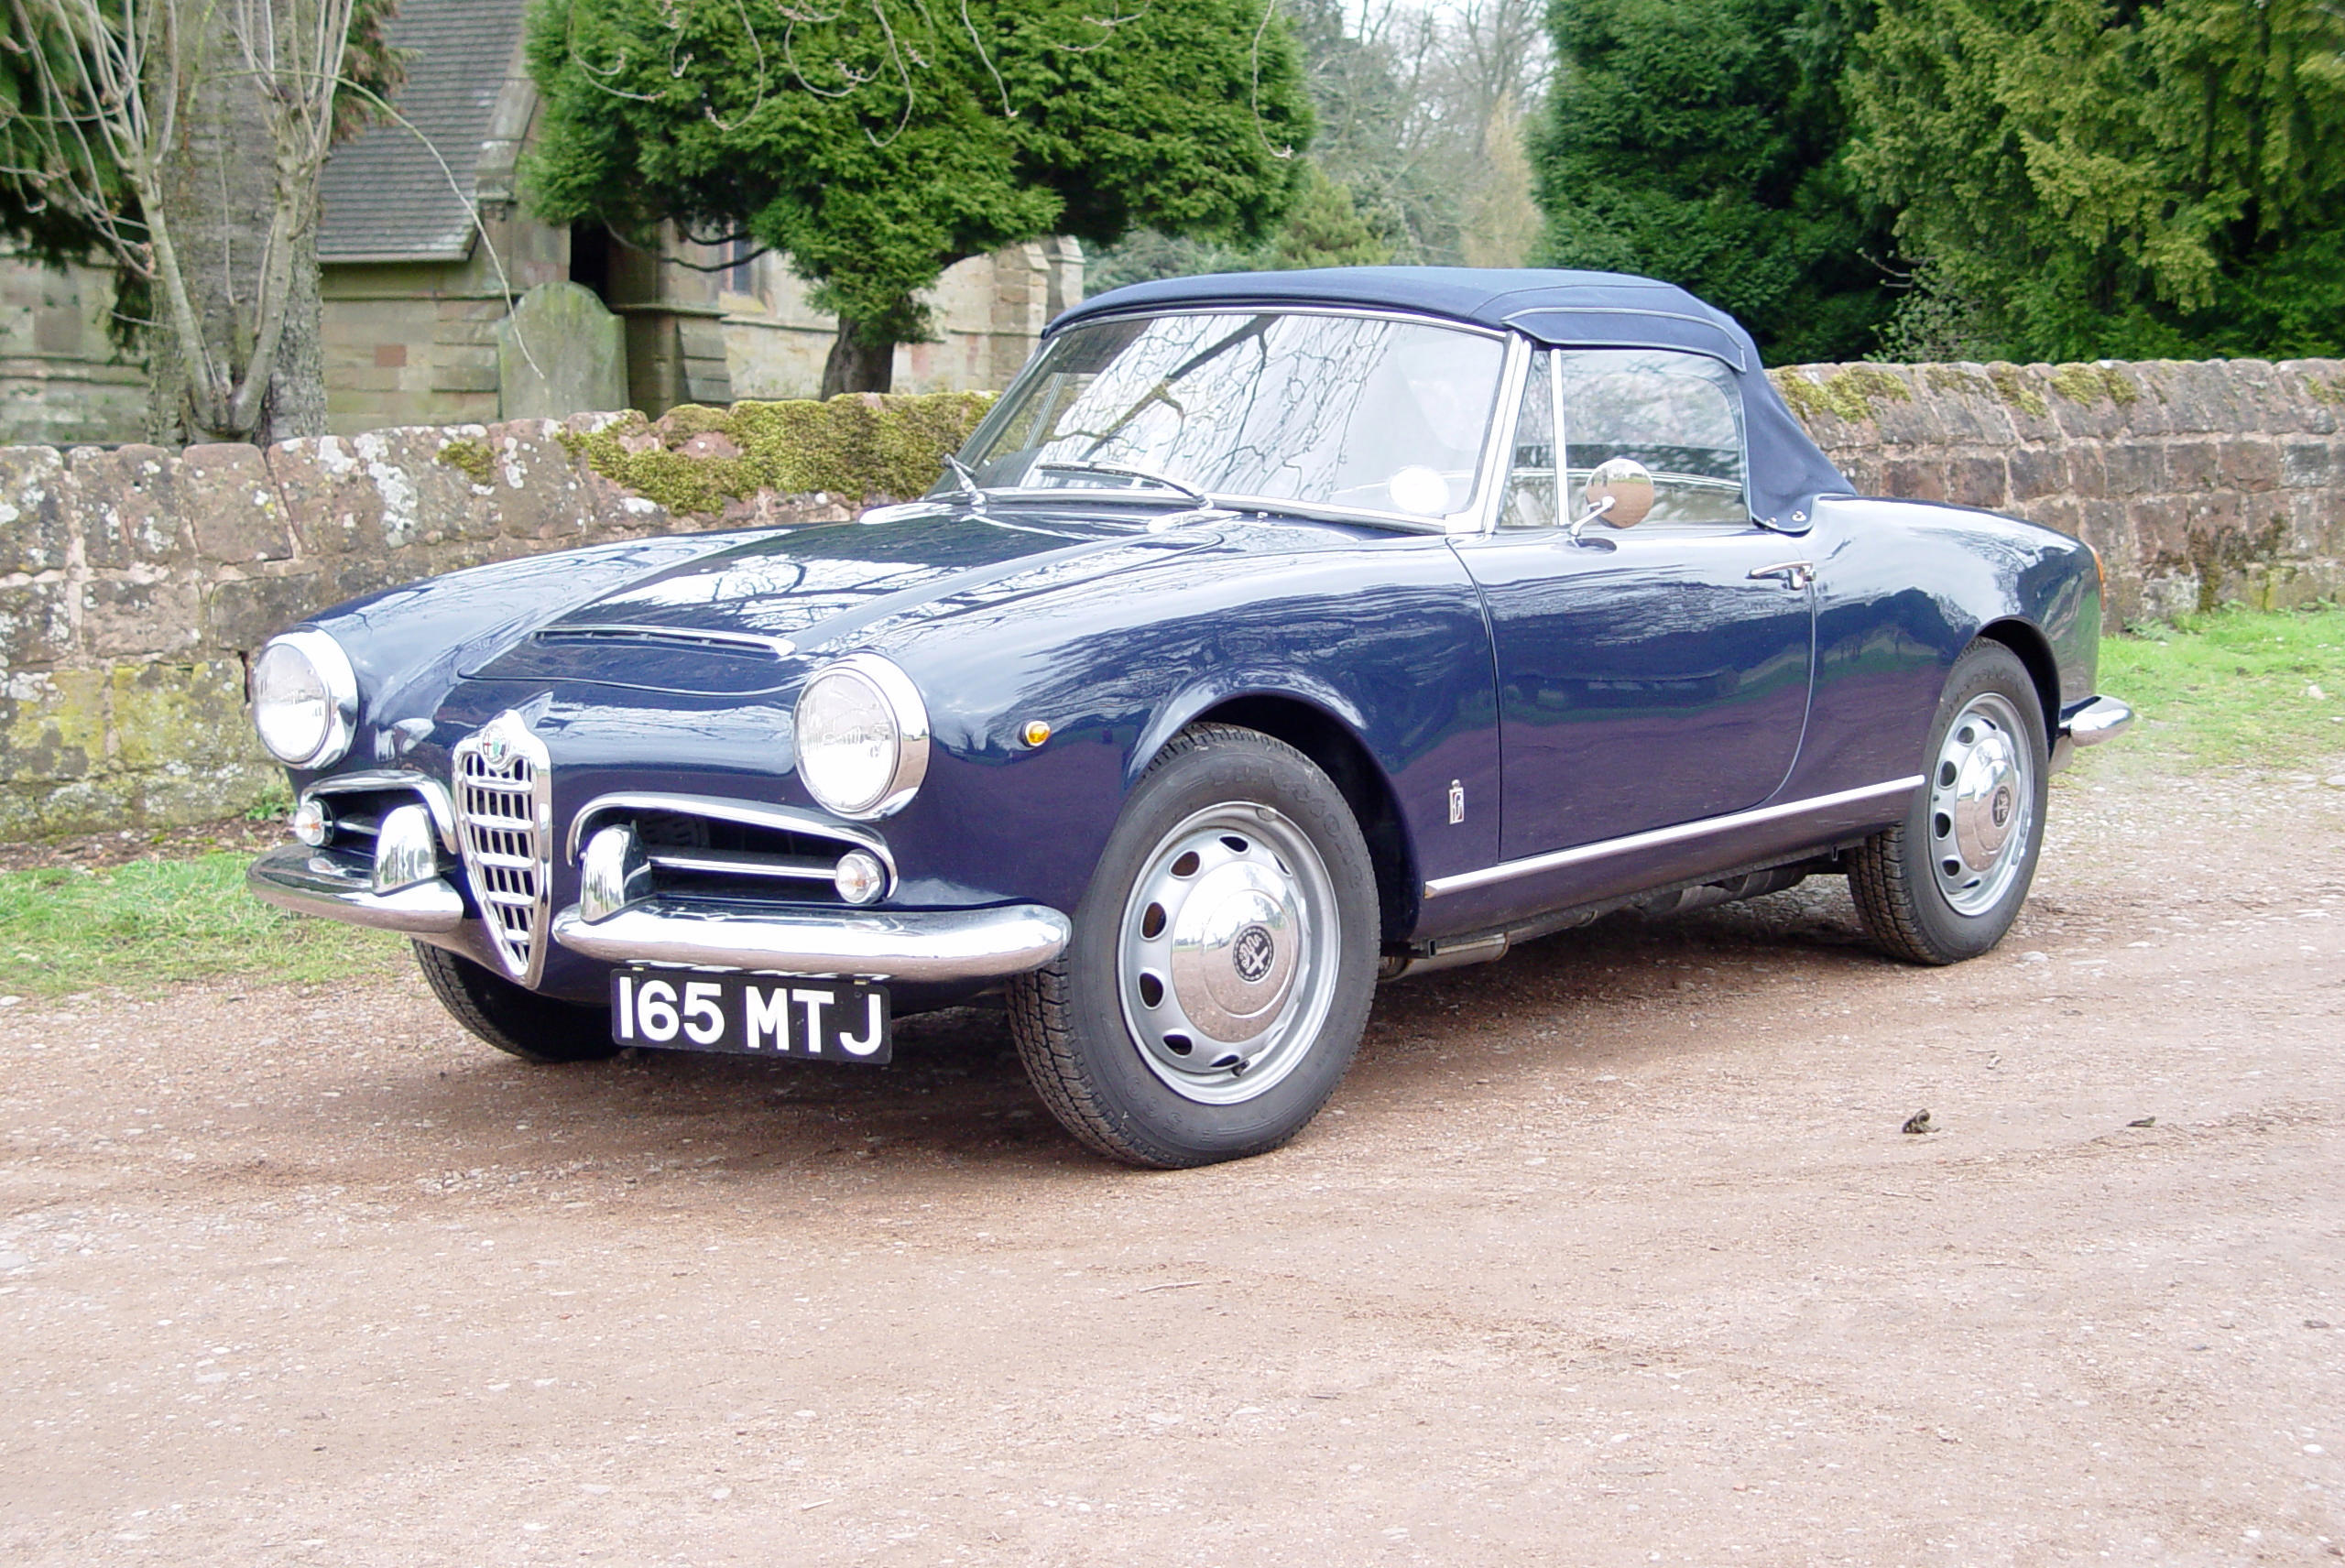 1963 Alfa Romeo Giulia Spider Coachwork by Pininfarina Registration no. 165...